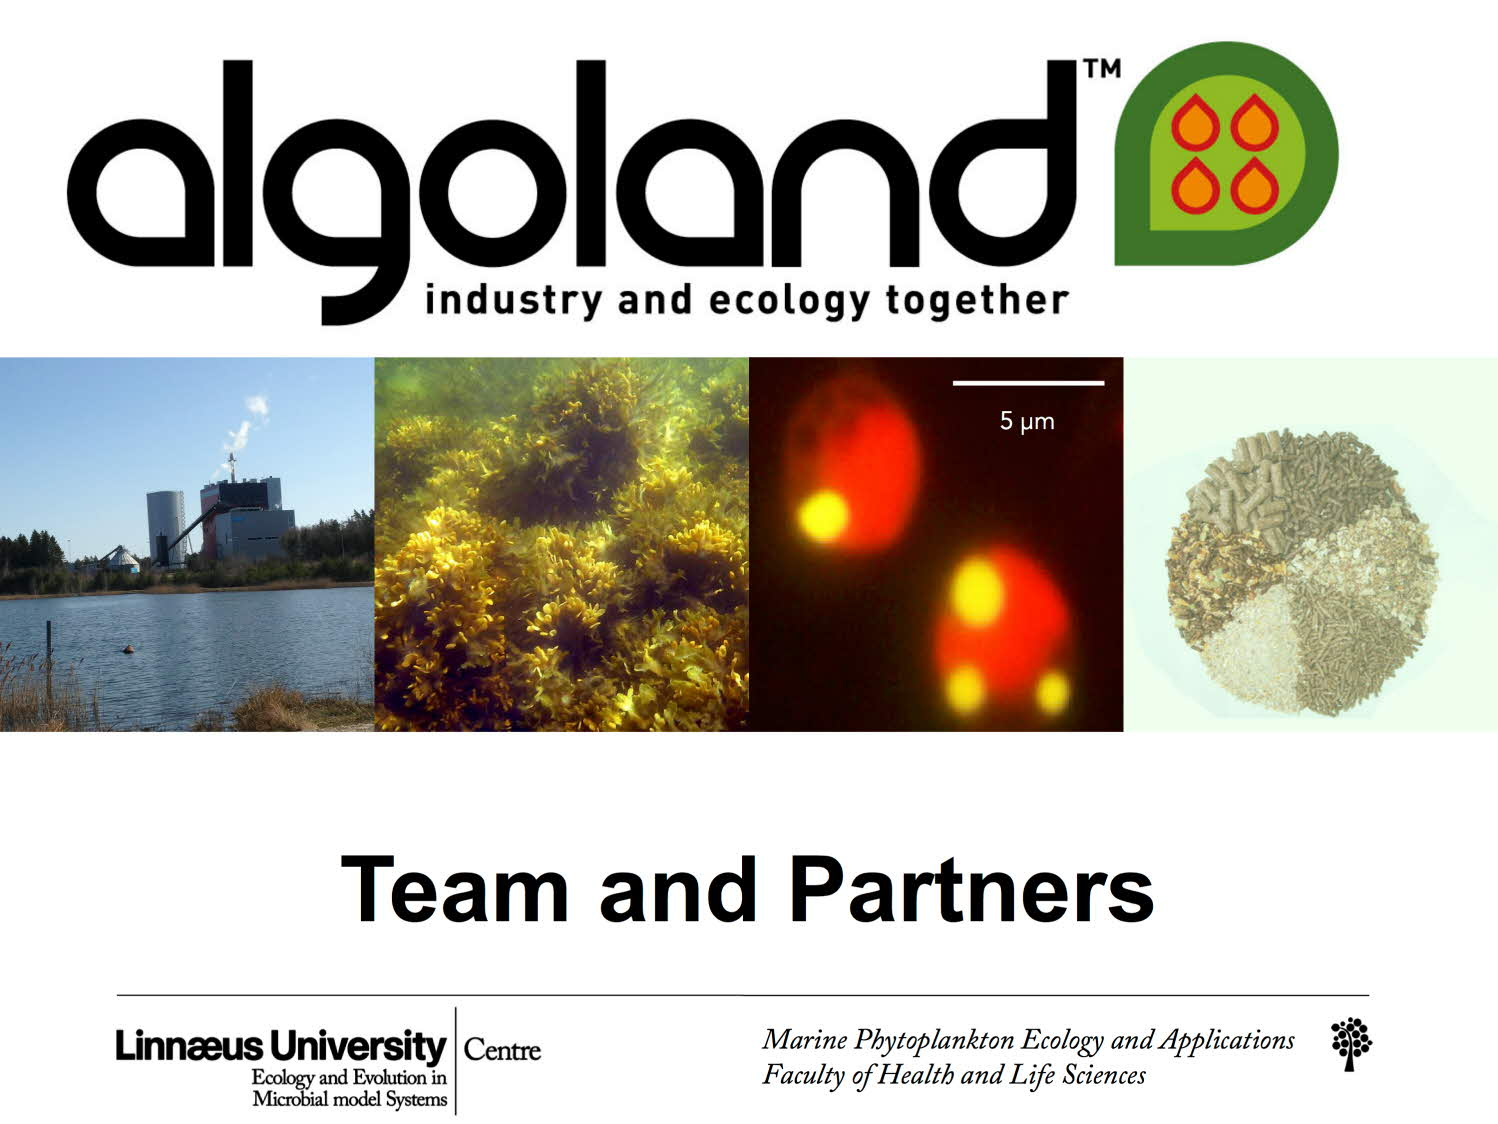 Algoland - Team and Partners